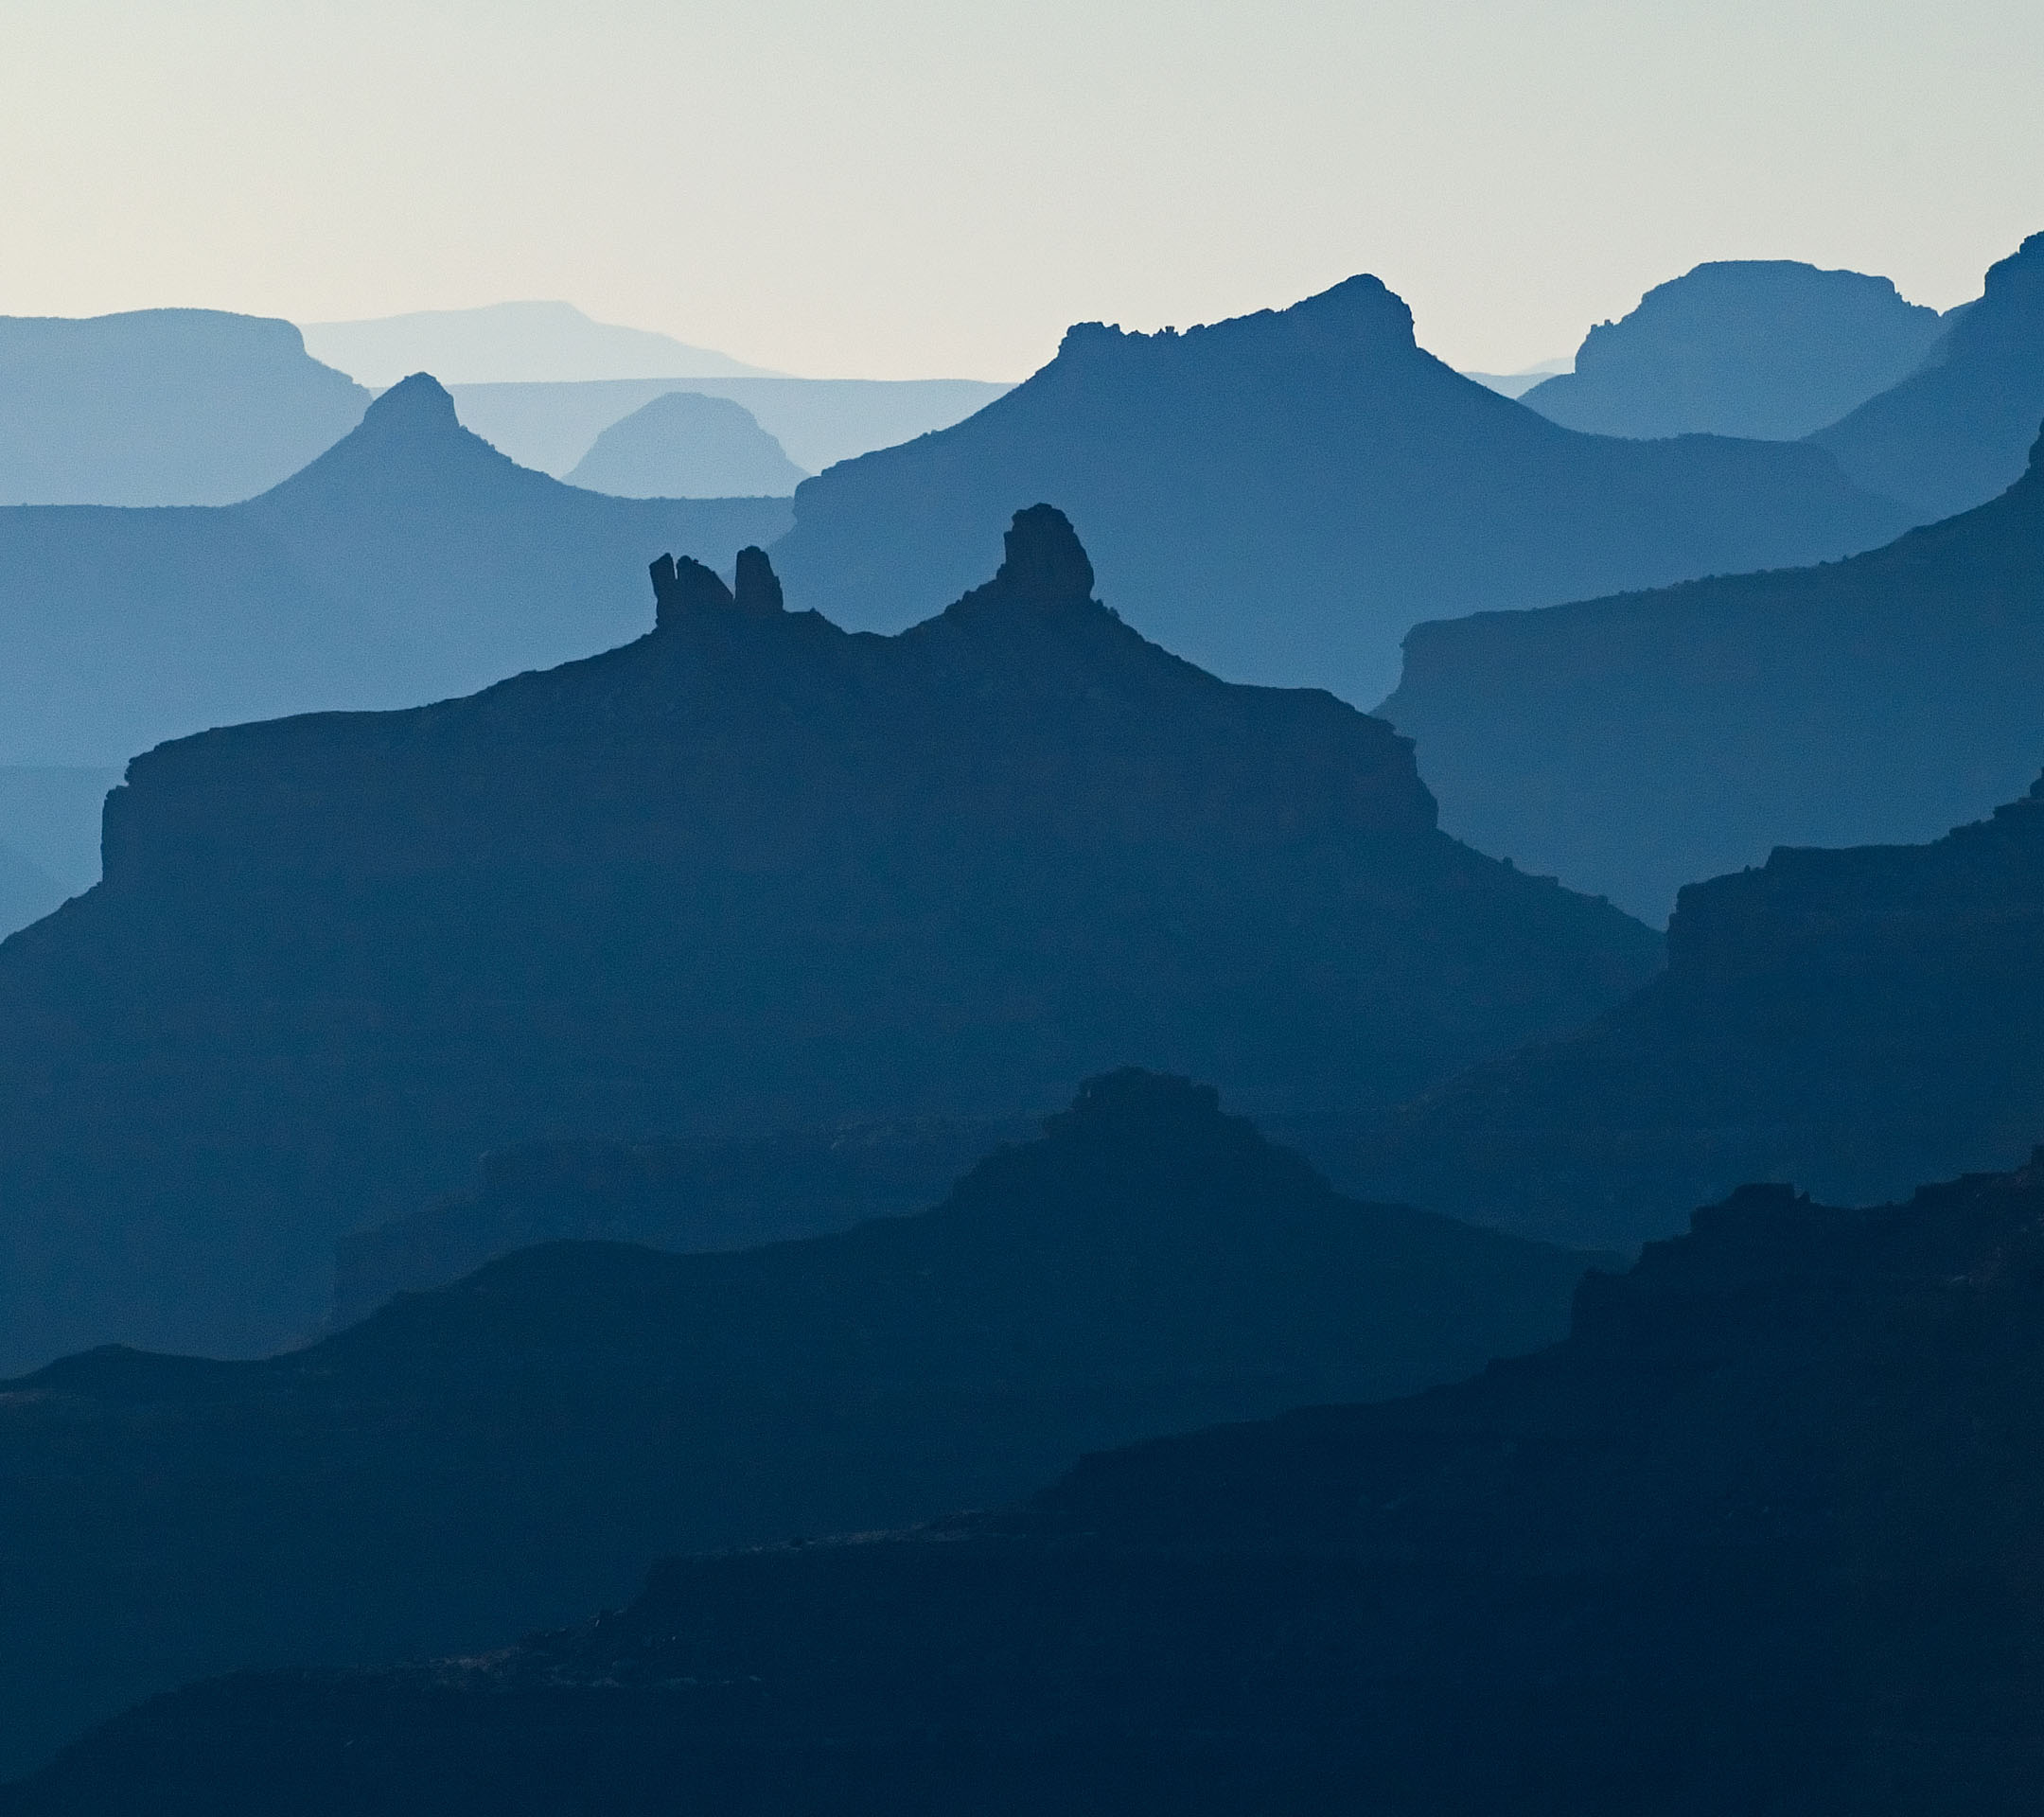 Siluette of the Grand Canyon (Desert view) at sunset, Arizona, USA